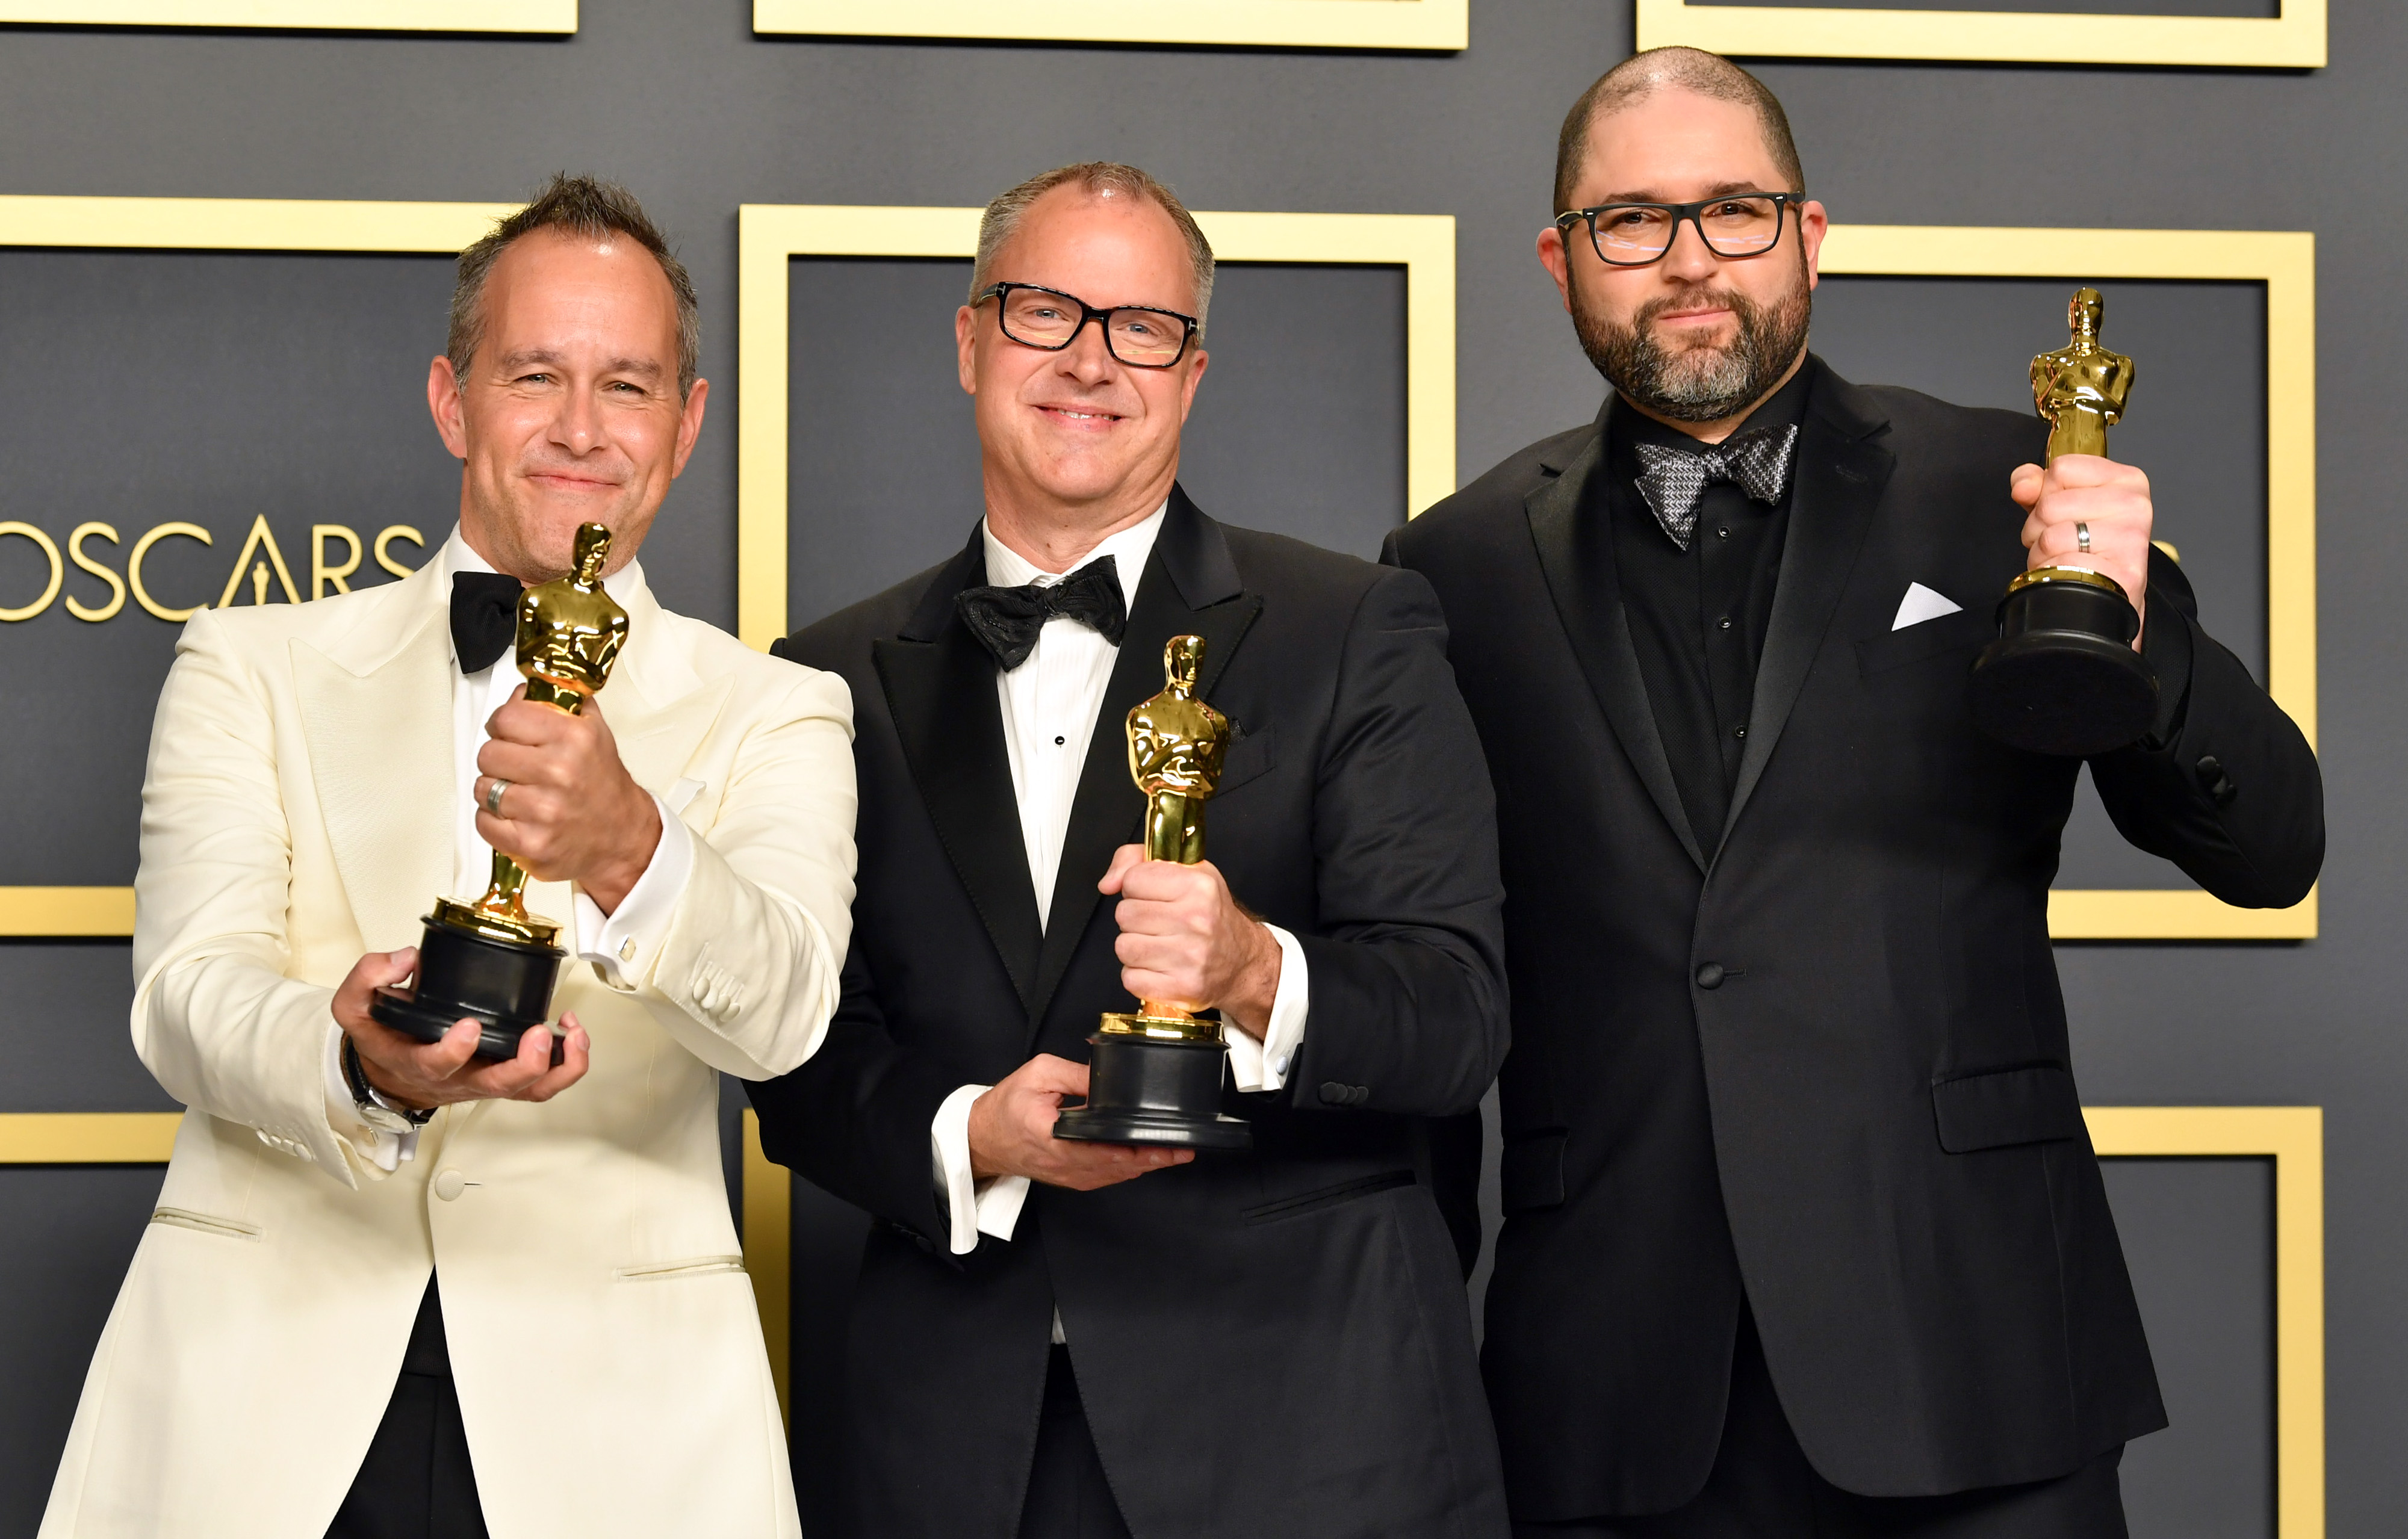 """Filmmakers Jonas Rivera, Mark Nielsen and Josh Cooley, winners of the Animated Feature Film award for """"Toy Story 4,""""  pose in the press room during the 92nd Annual Academy Awards at Hollywood and Highland on February 09, 2020 in Hollywood, California. (Photo by Amy Sussman/Getty Images)"""